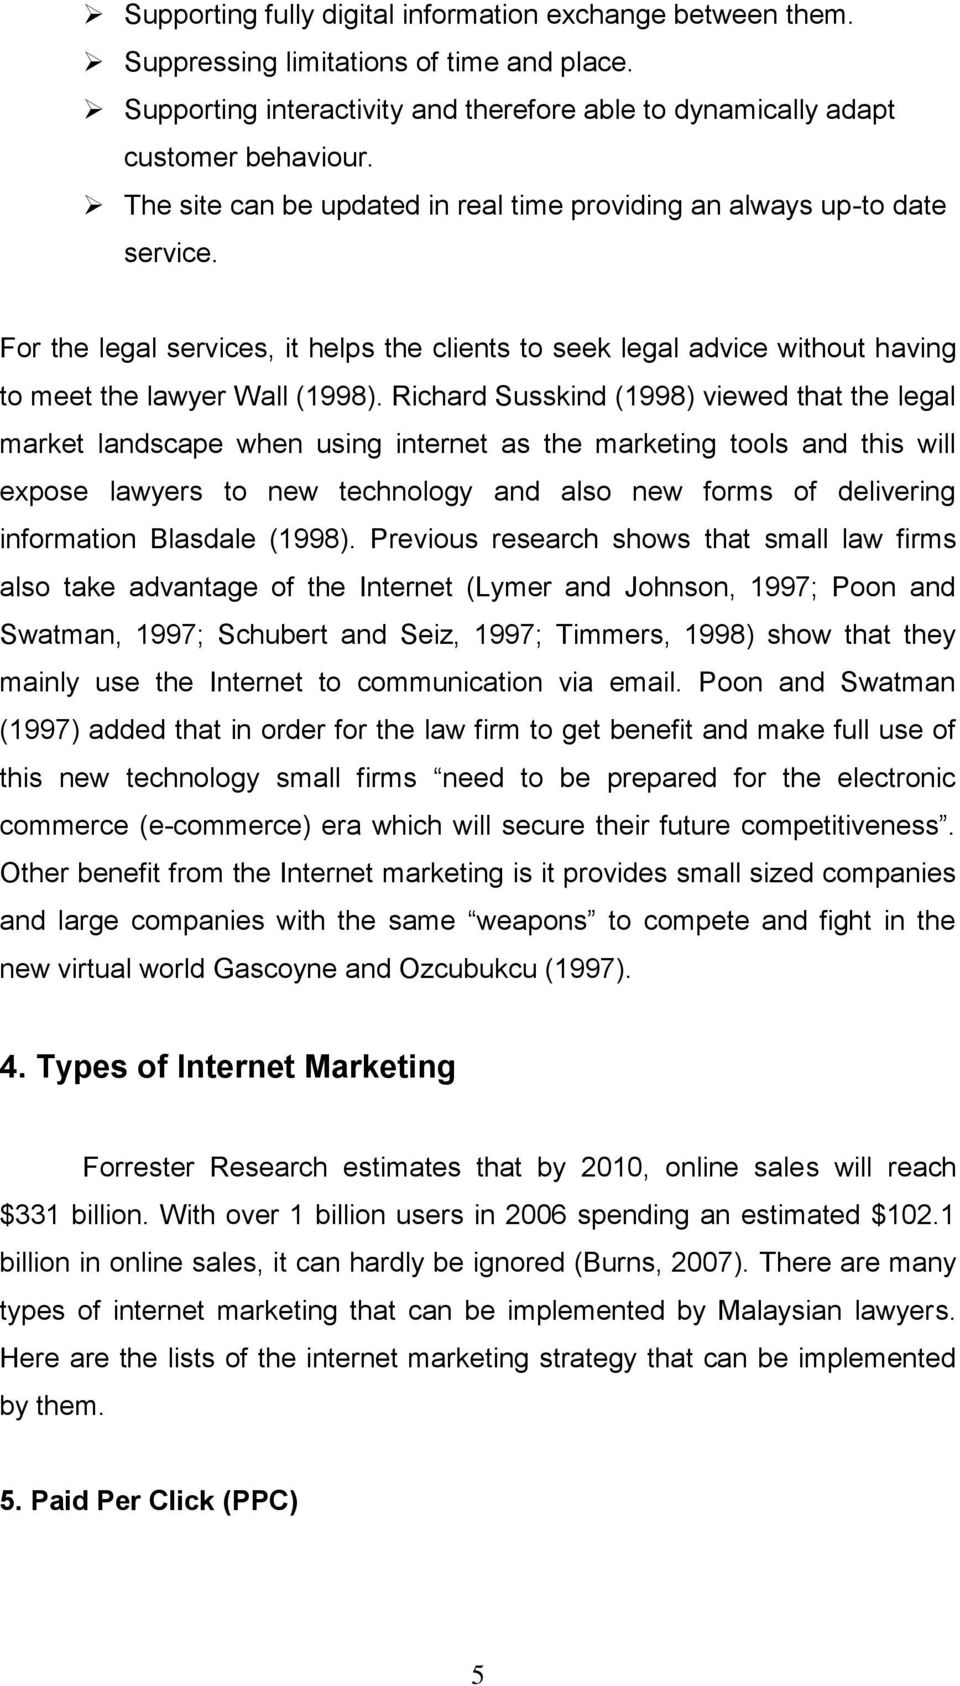 Richard Susskind (1998) viewed that the legal market landscape when using internet as the marketing tools and this will expose lawyers to new technology and also new forms of delivering information